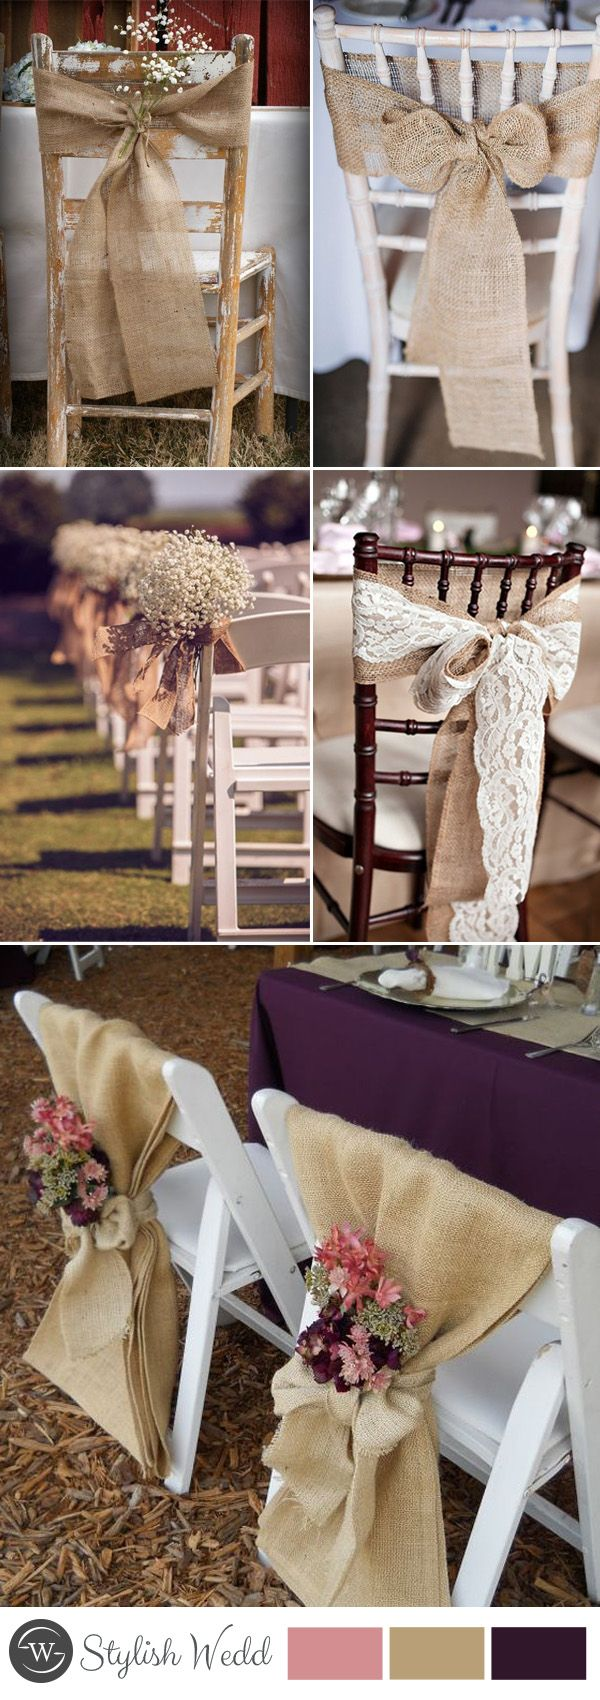 Affordable wedding chair decorations - 50 Great Ways To Decorate Your Weddding Chair